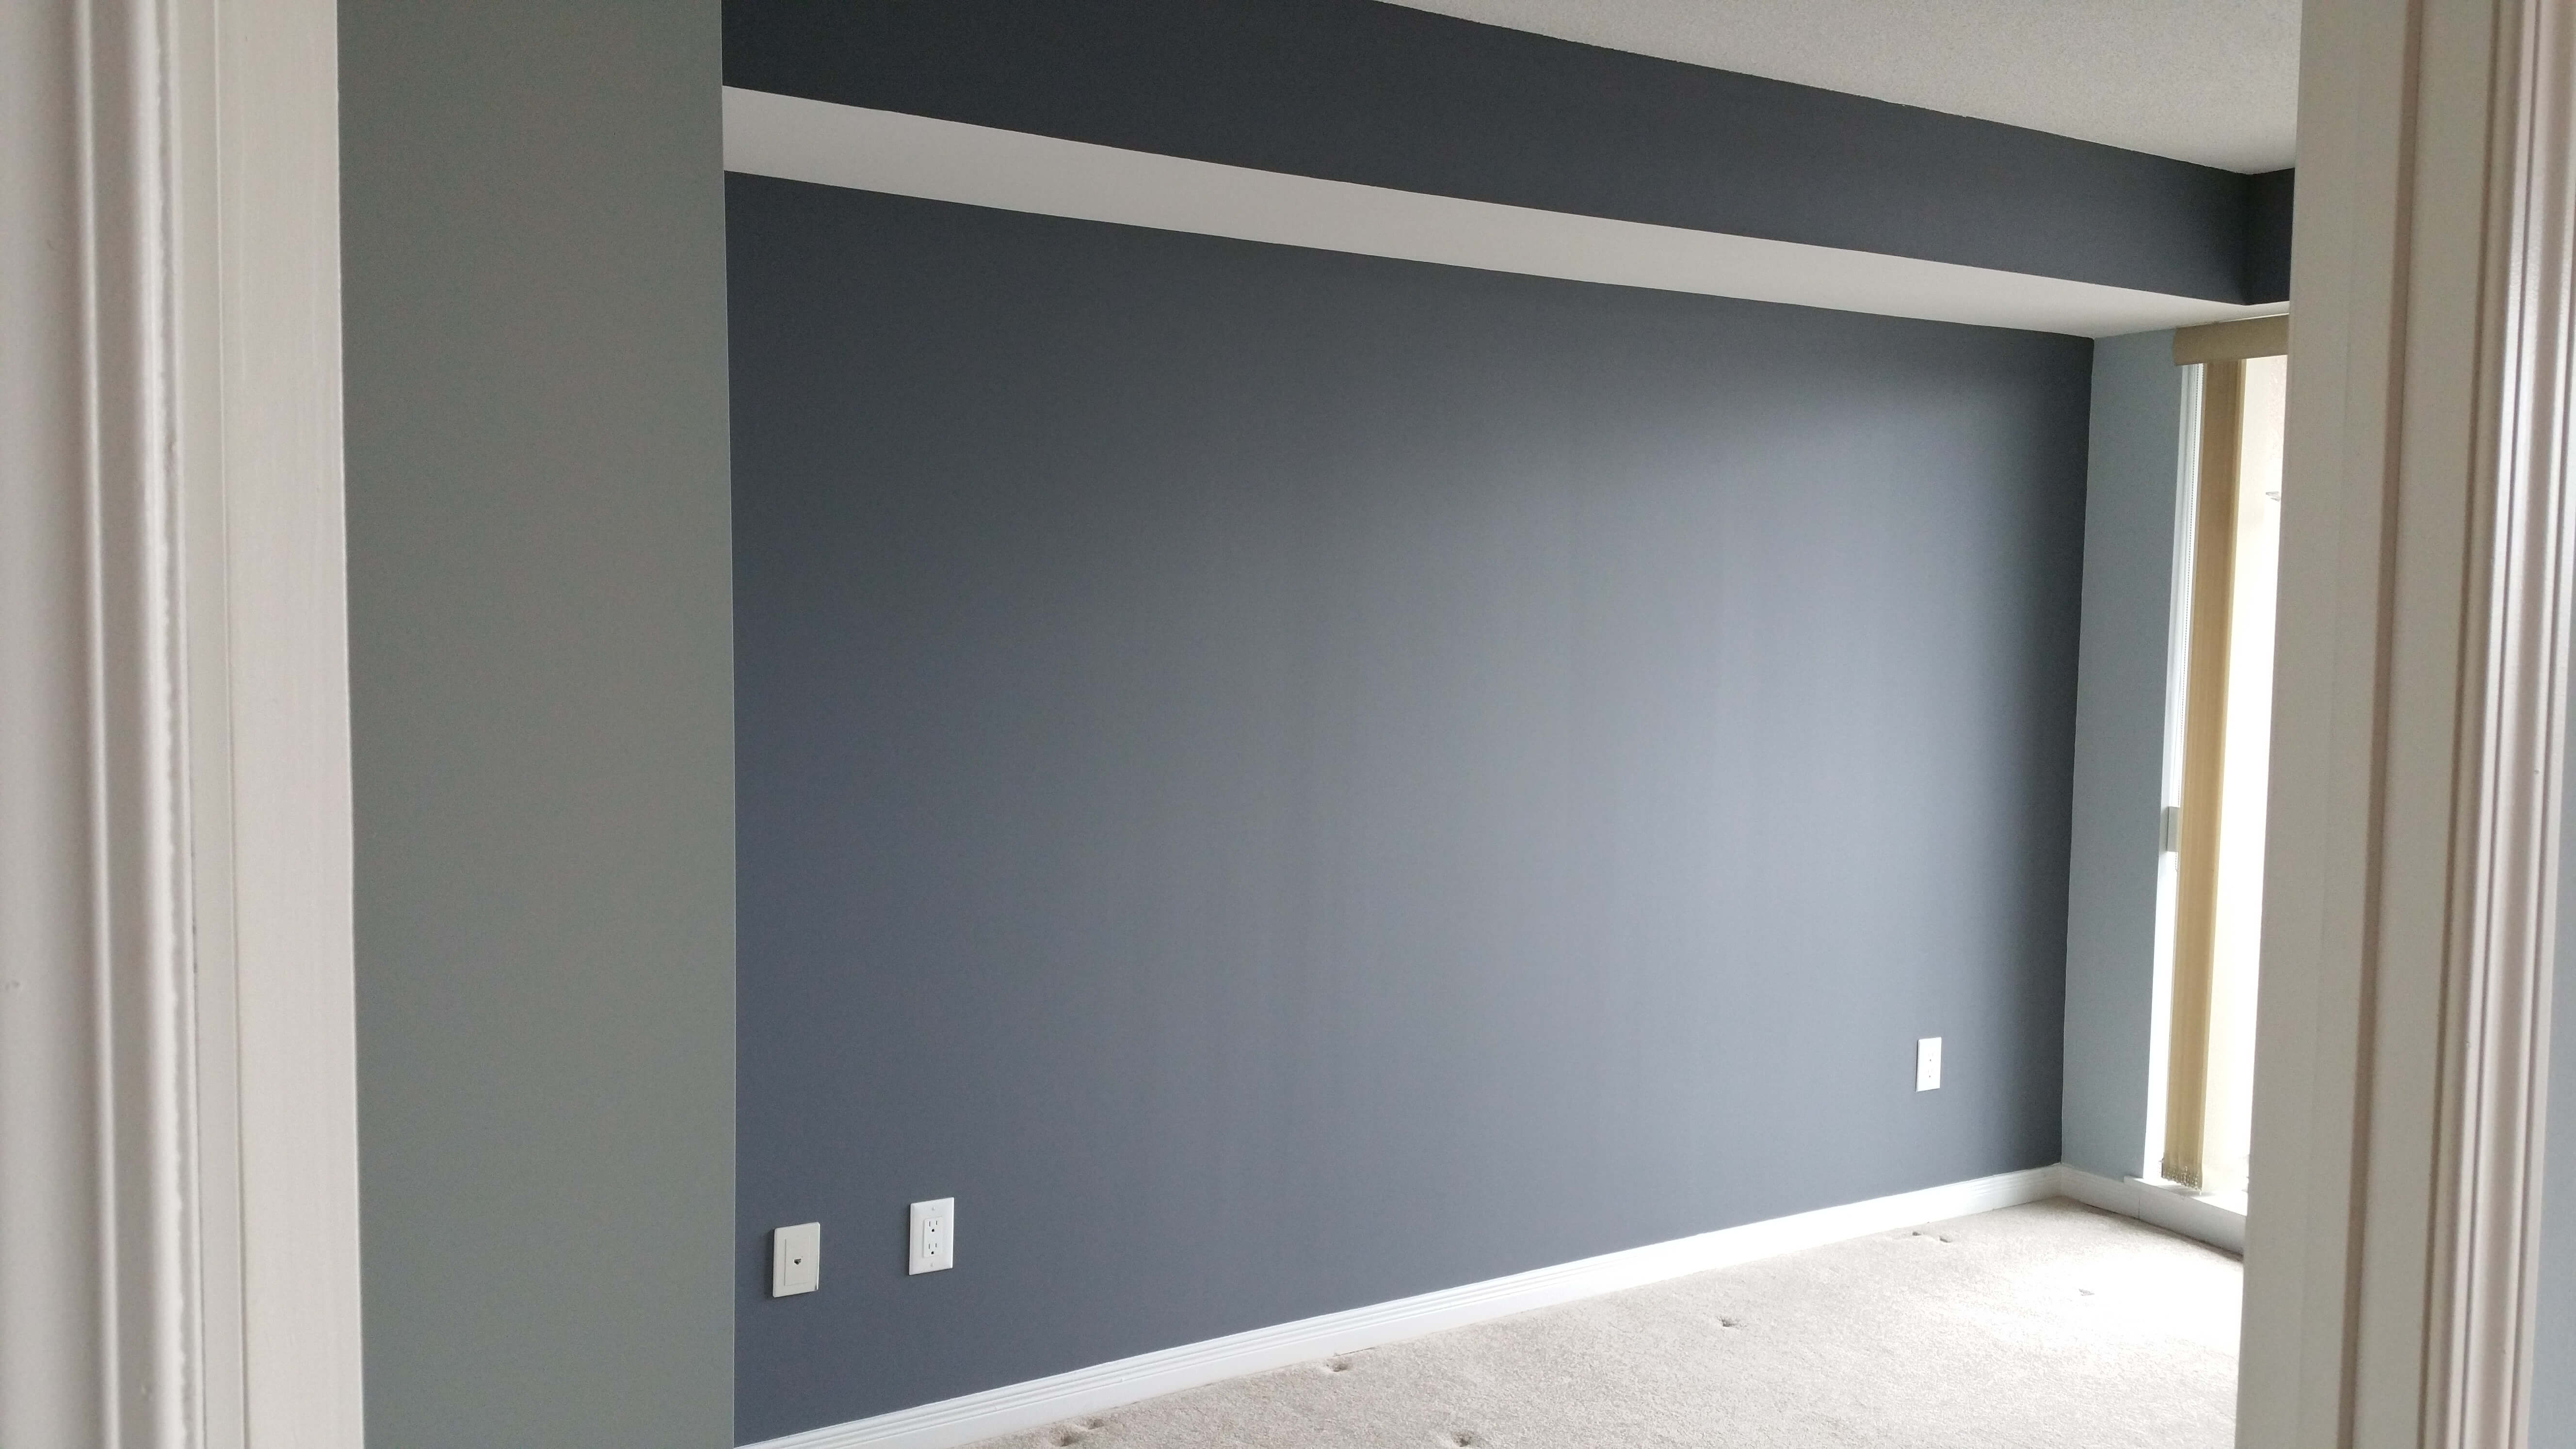 Condo Painters Pro - Toronto Professional Home Painting